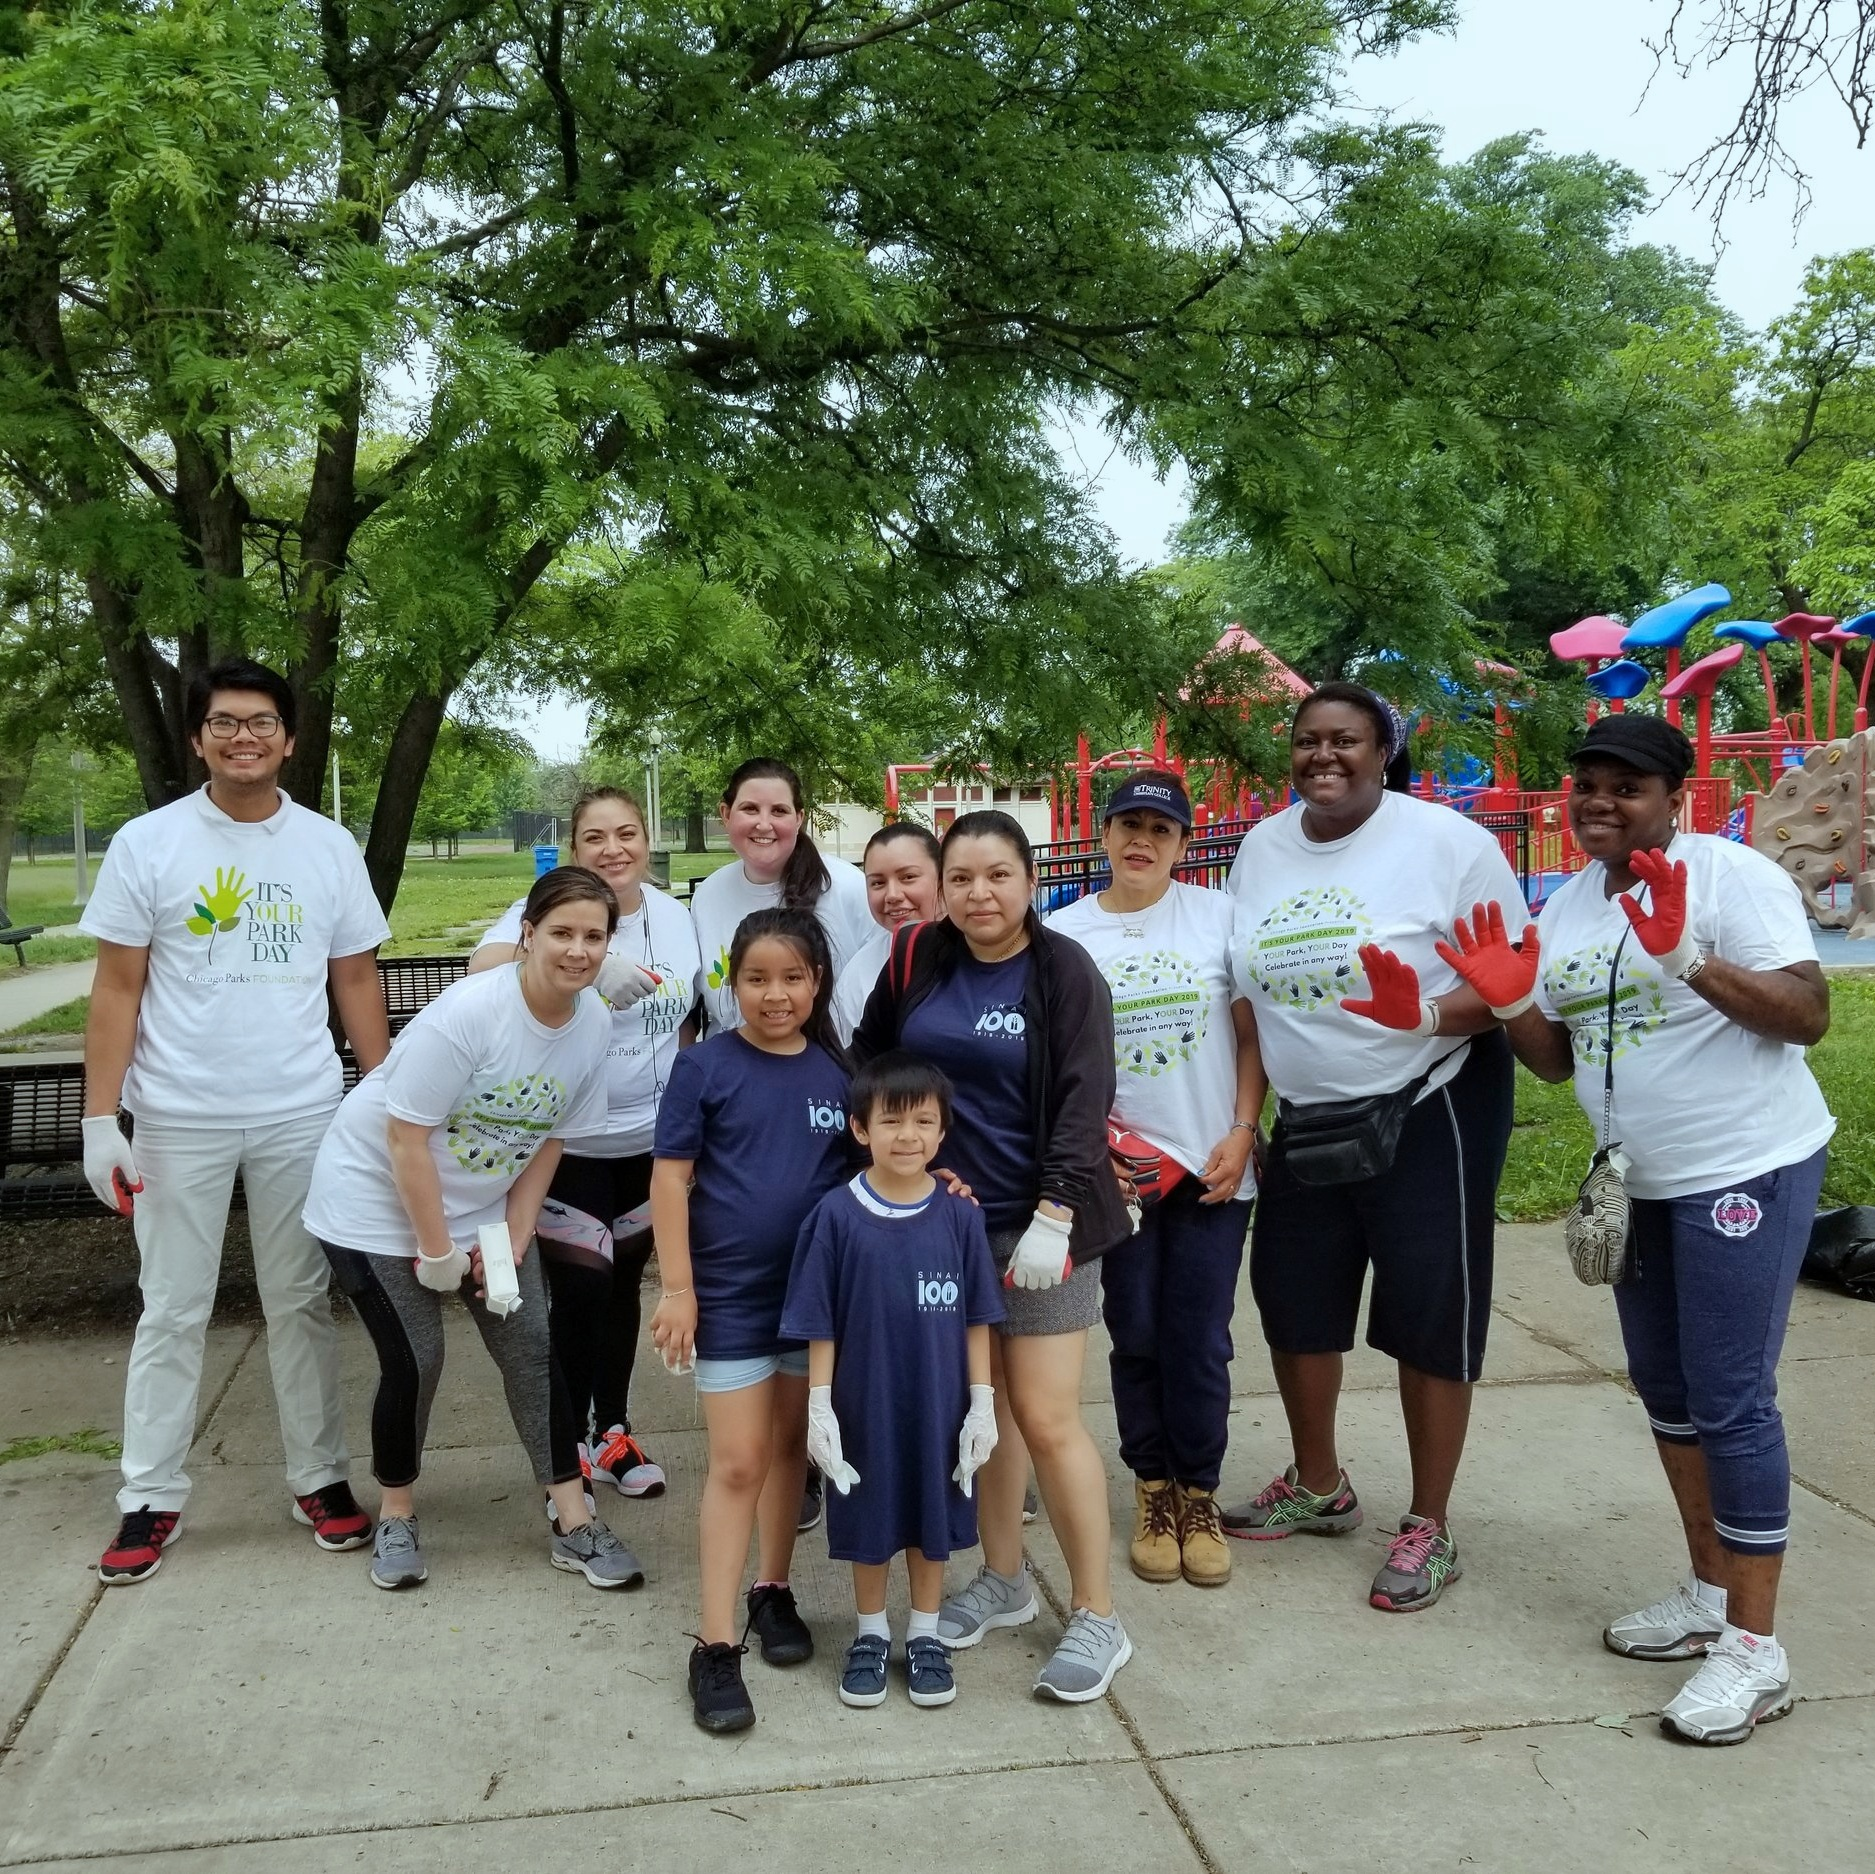 IT'S YOUR PARK DAY   JUNE 1   • Citywide